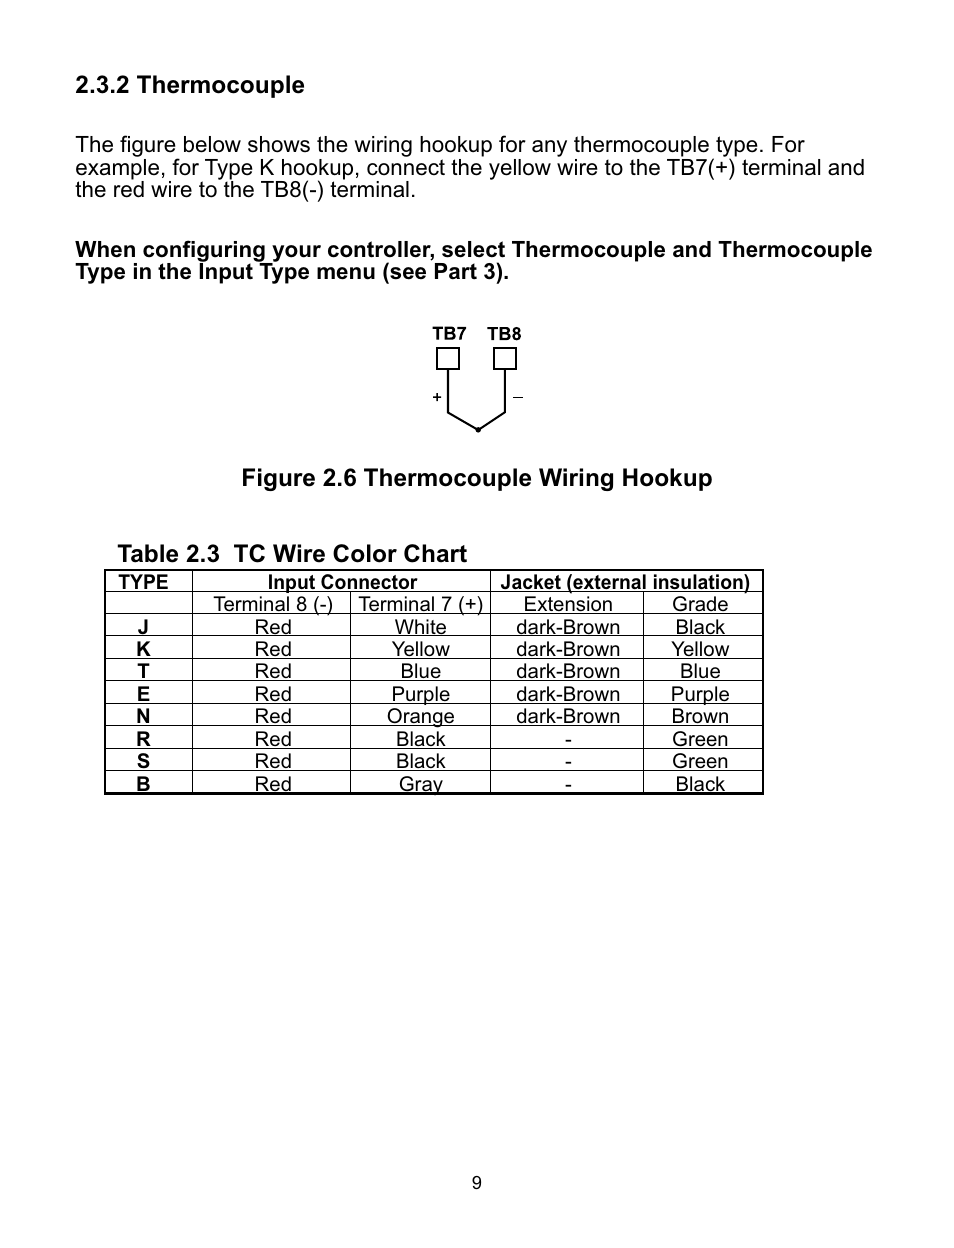 hight resolution of 2 thermocouple figure 2 6 thermocouple wiring hookup table 2 3 tc wire color chart